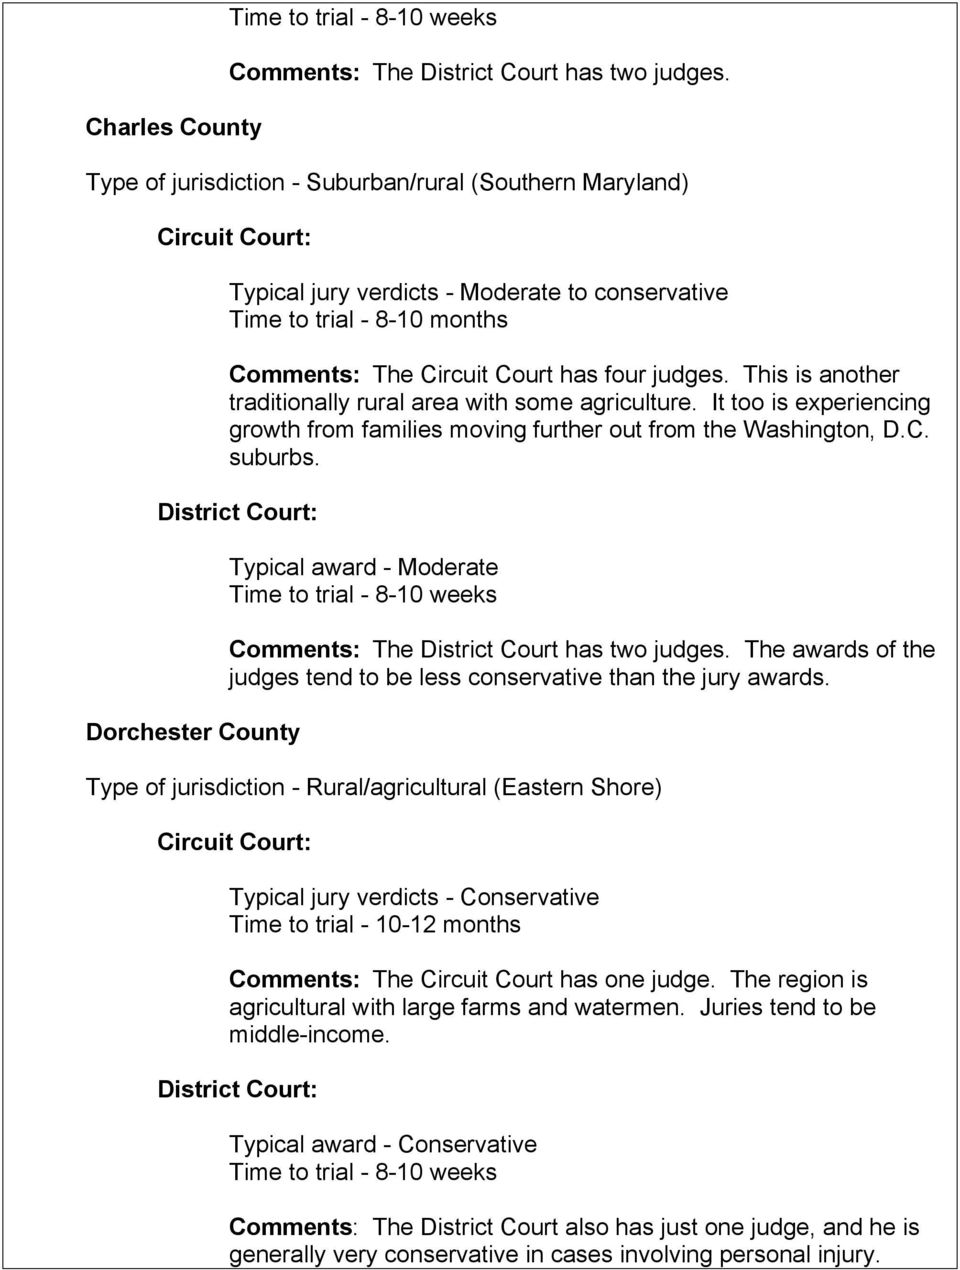 Type of jurisdiction - Rural (Far western panhandle of Maryland